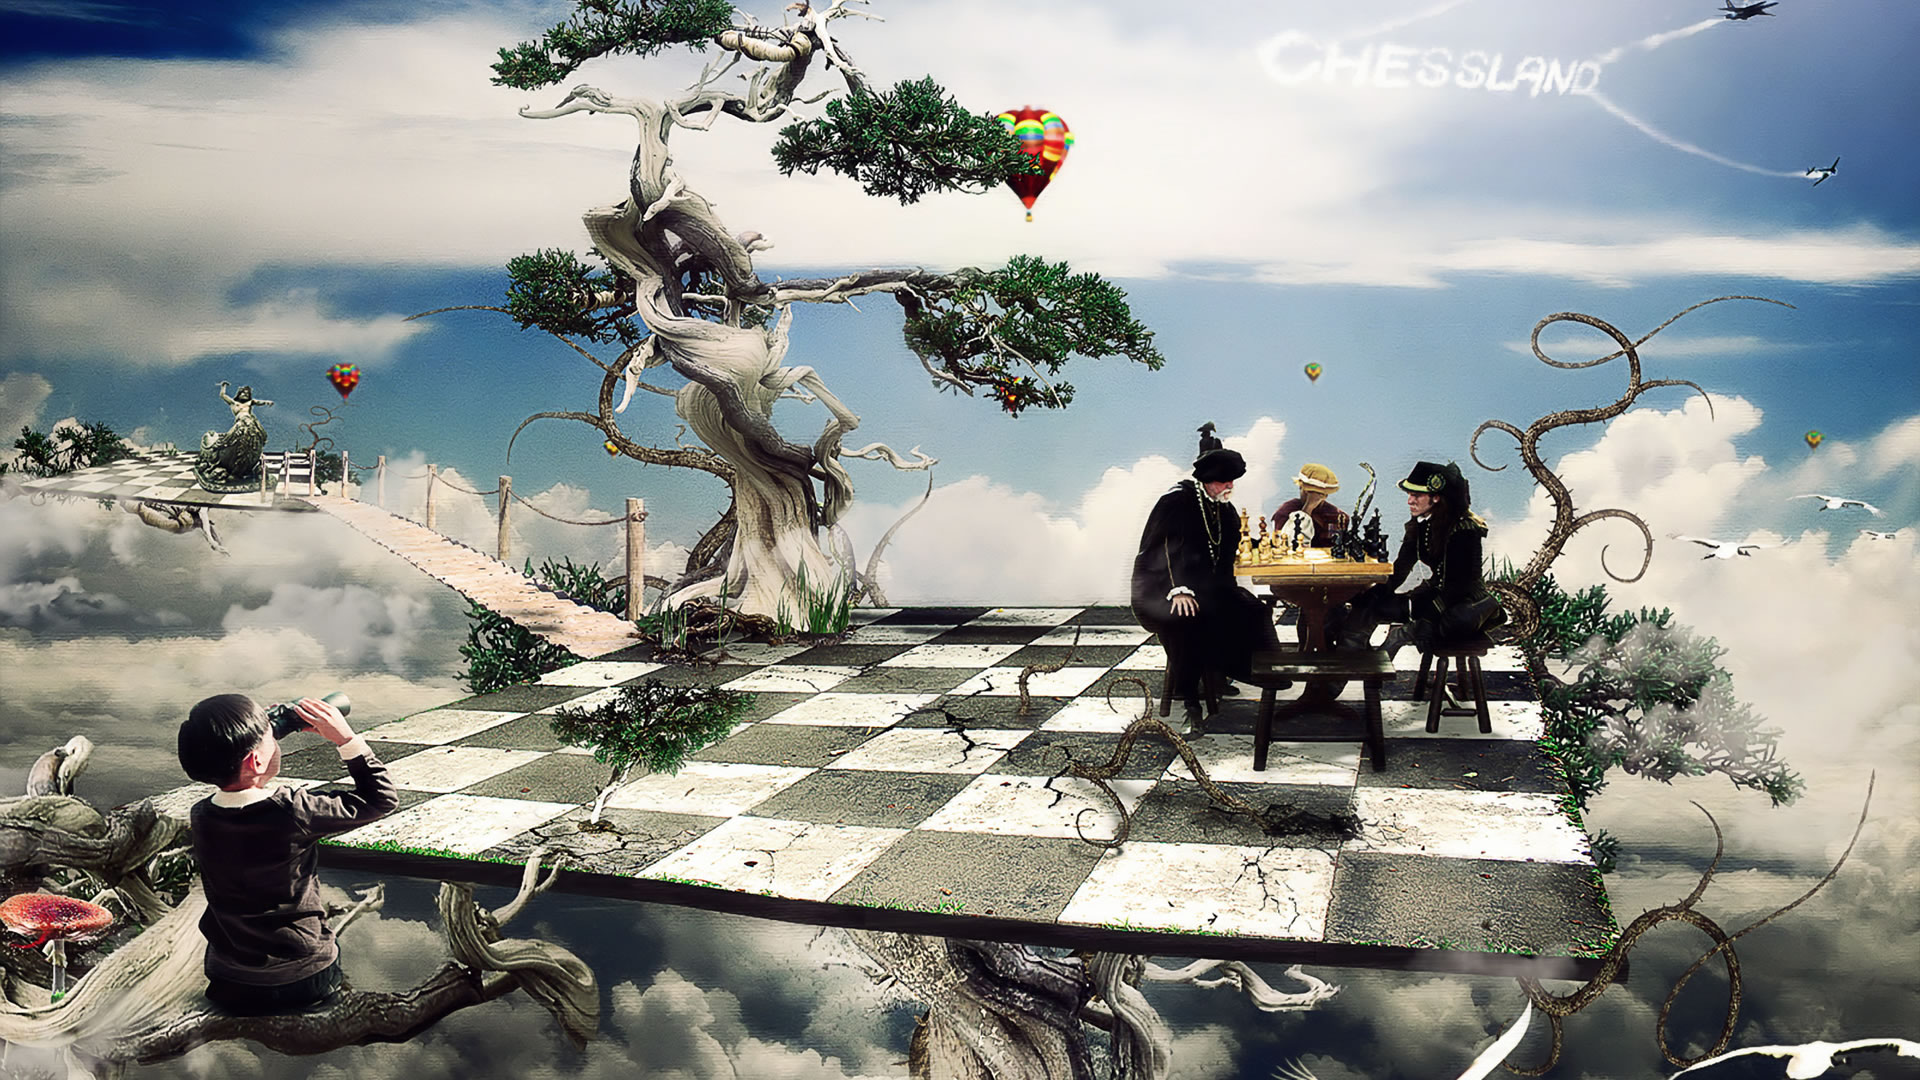 [47+] 3D Chess Wallpaper On WallpaperSafari